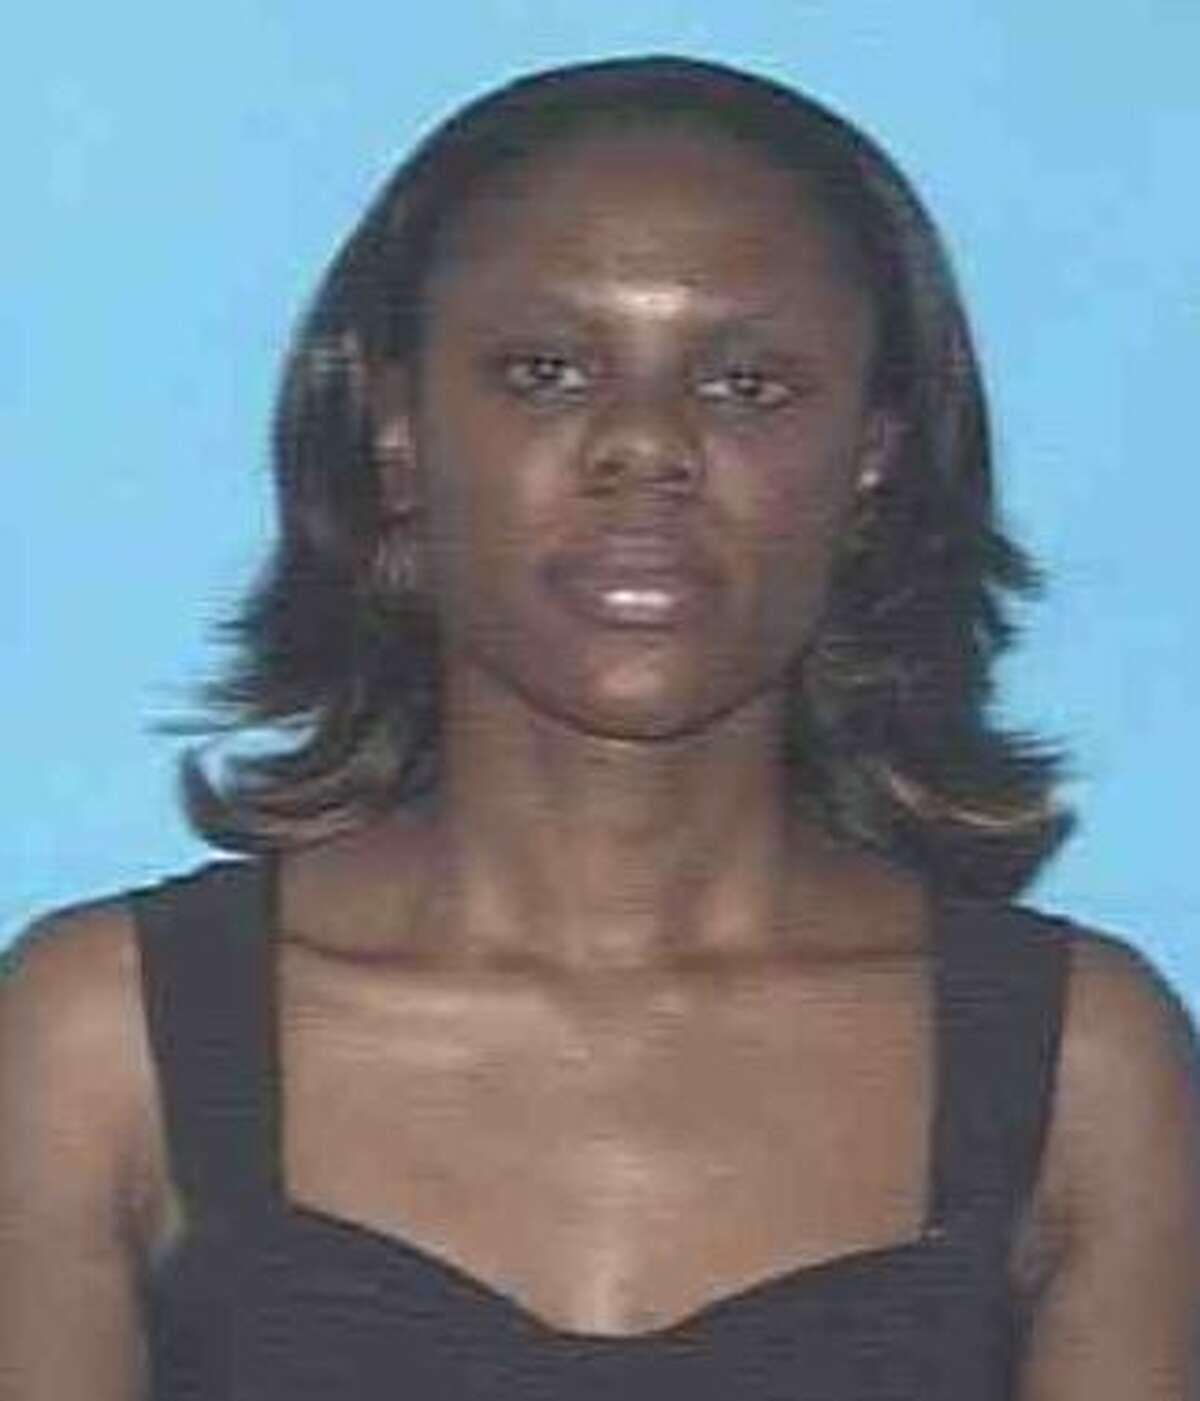 Charity Ingungu Asena of Spring is wanted by the Montgomery County Sheriff's Office on a charge of aggravated assault. Her warrant is active as of Thursday.